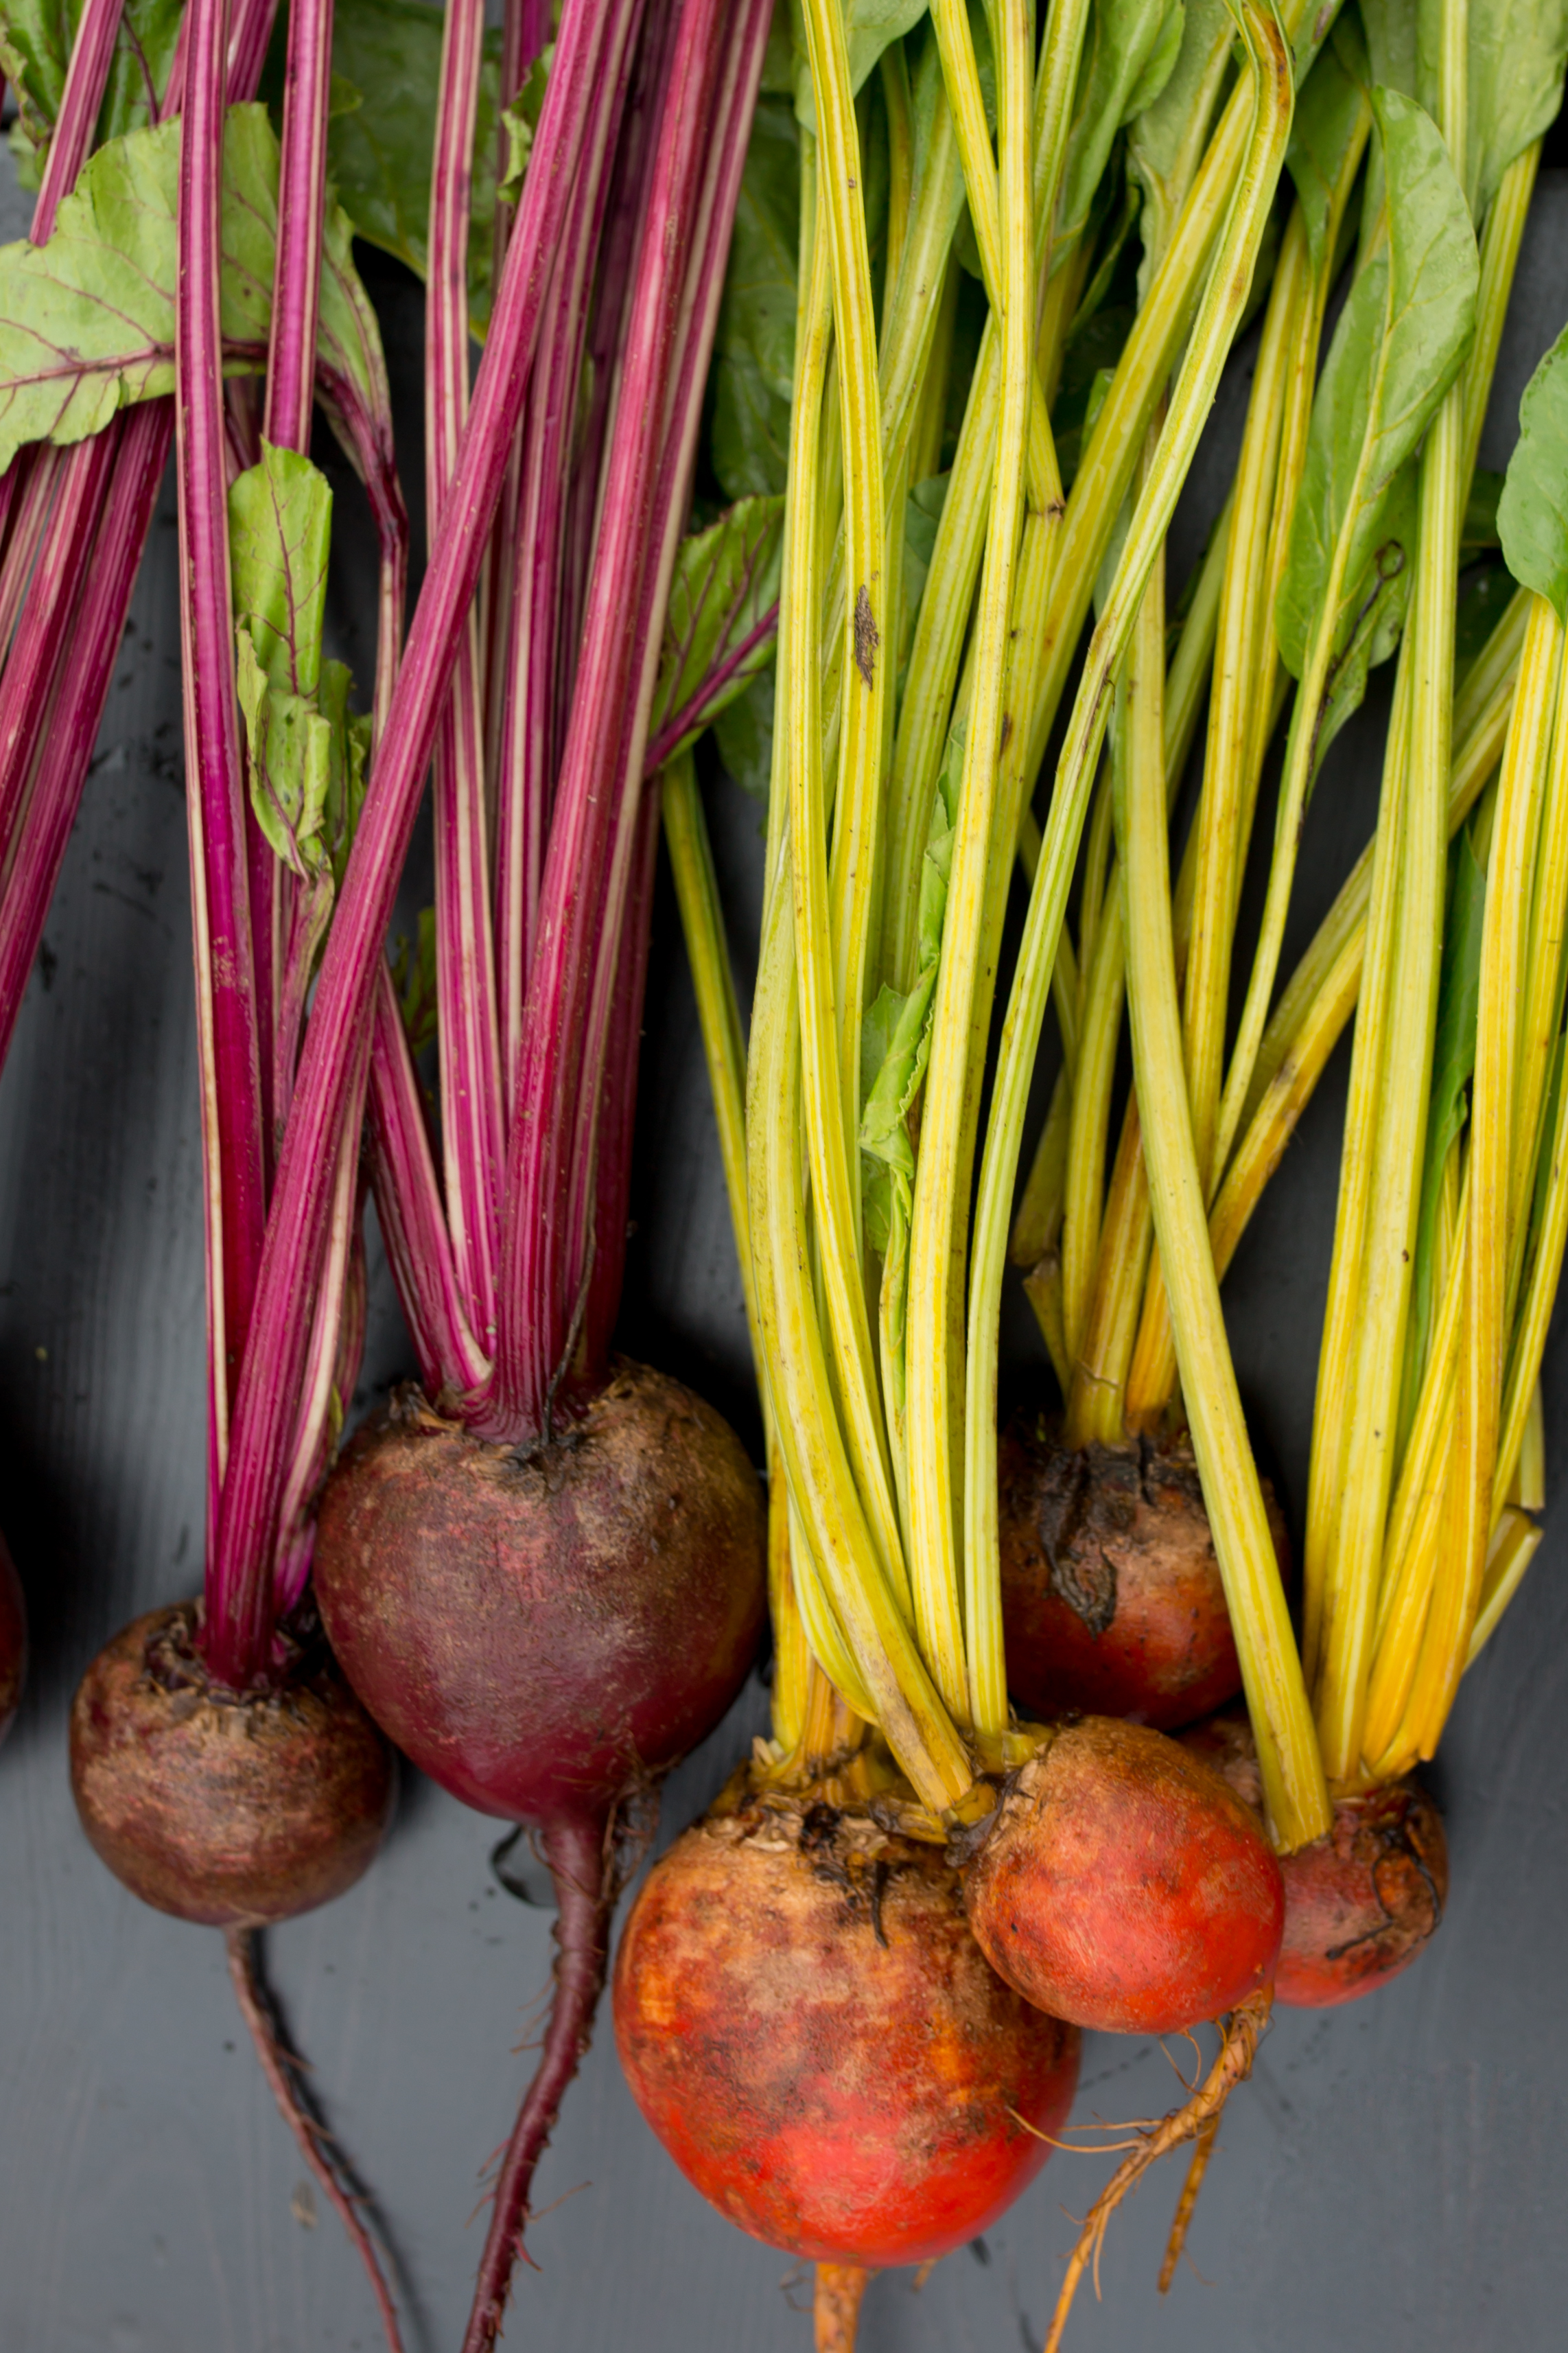 When Buying - Choose firm bulbs with smooth skin and crisp, fresh stalks and dark green leafy tops.